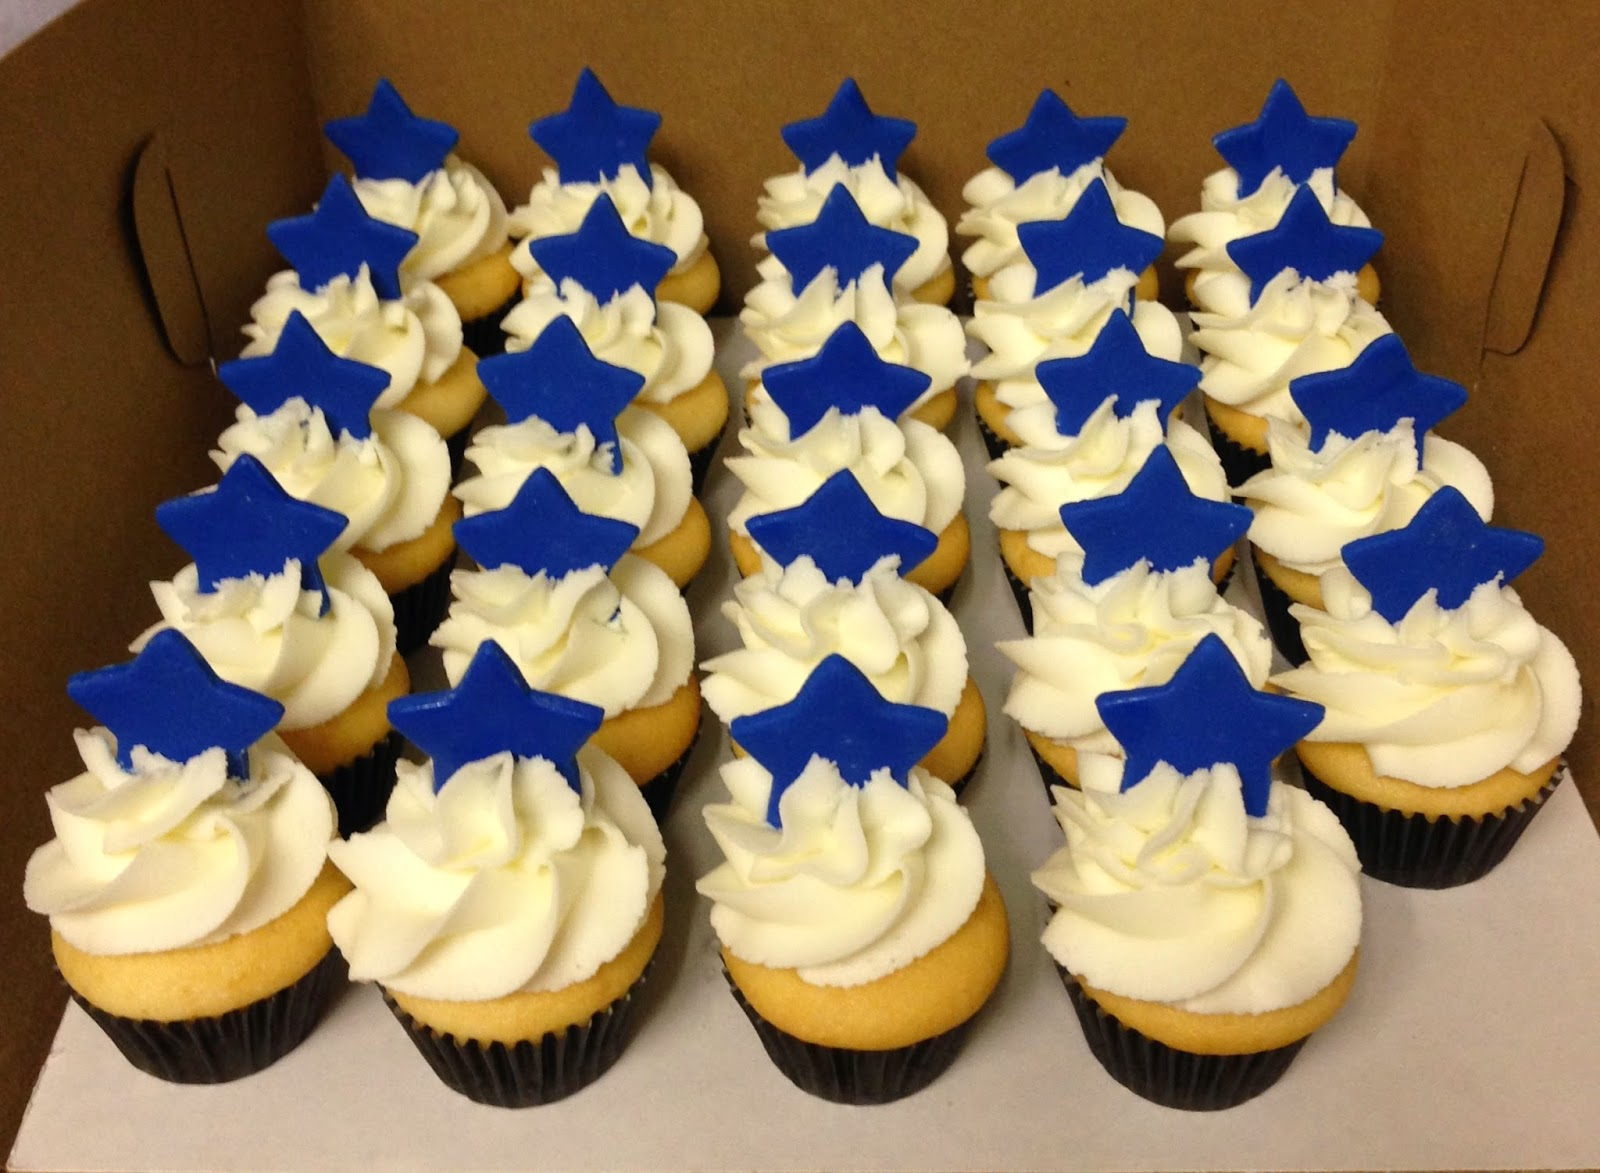 Cakes by Mindy: Royal Blue and Black Graduation Cake and Mini ...